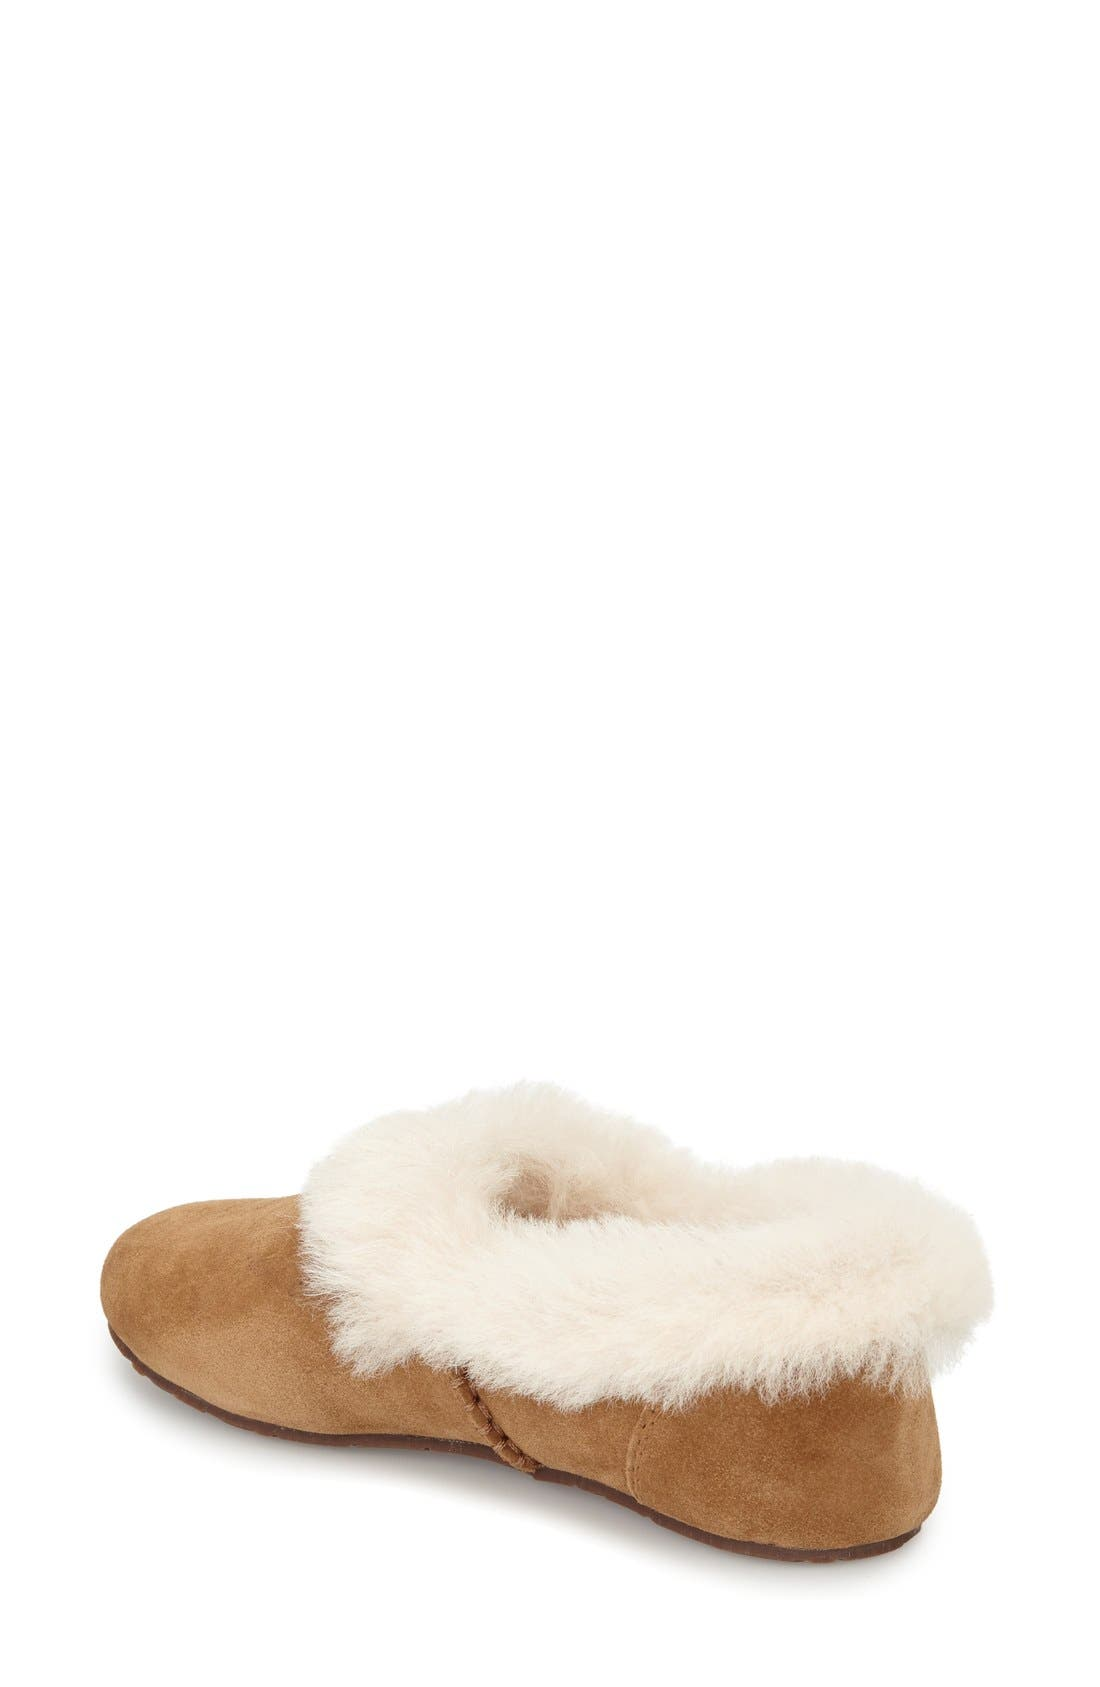 Alternate Image 3  - UGG® Kendyl Genuine Shearling Slipper (Women)